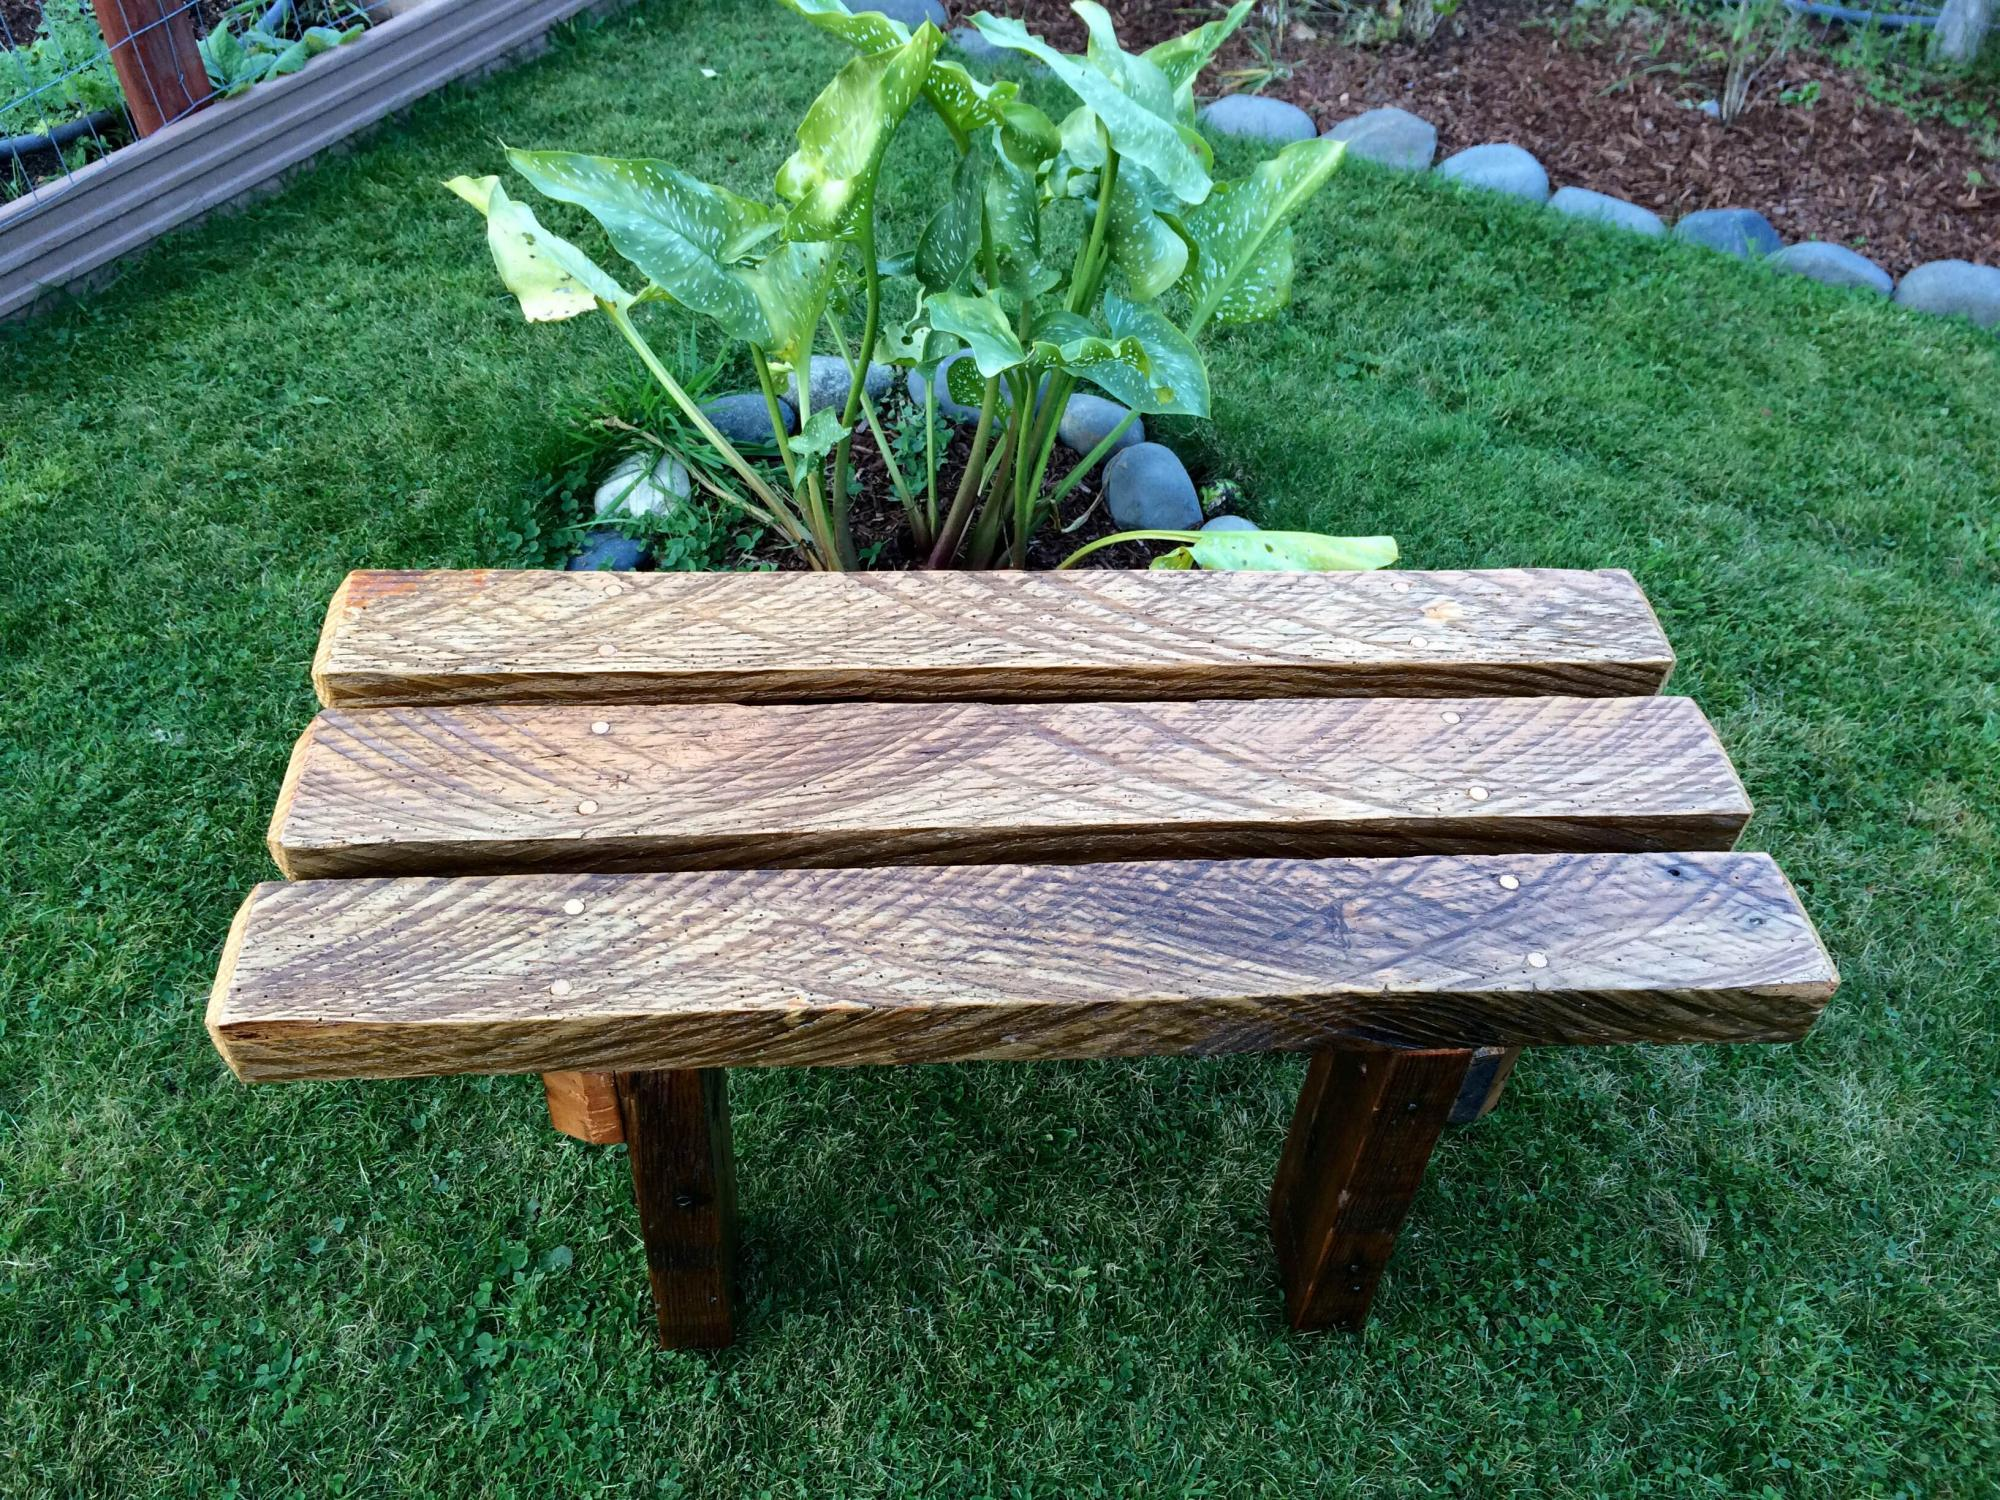 Rough cut old growth Douglas Fir bench.  Wood is from an early 1900's Skamakowa, WA homestead.  32Lx17Wx18H  $225